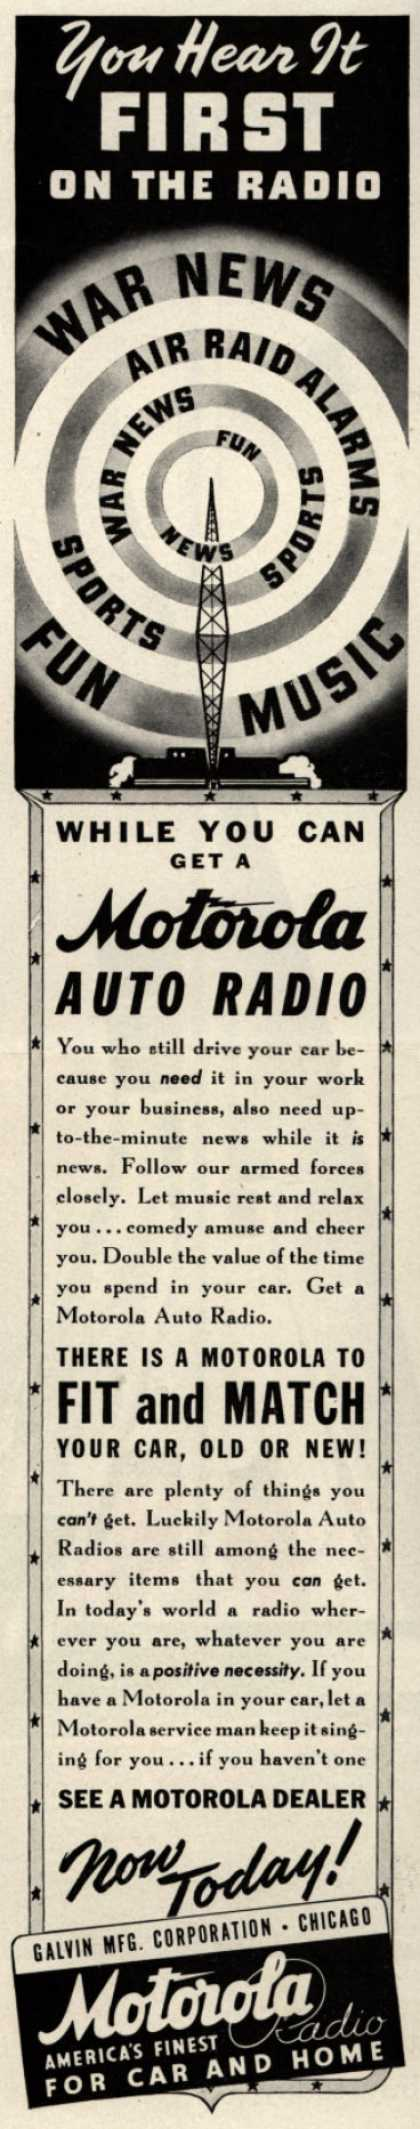 Galvin Manufacturing Corporation's Auto Radio – You Hear it First on the Radio (1942)